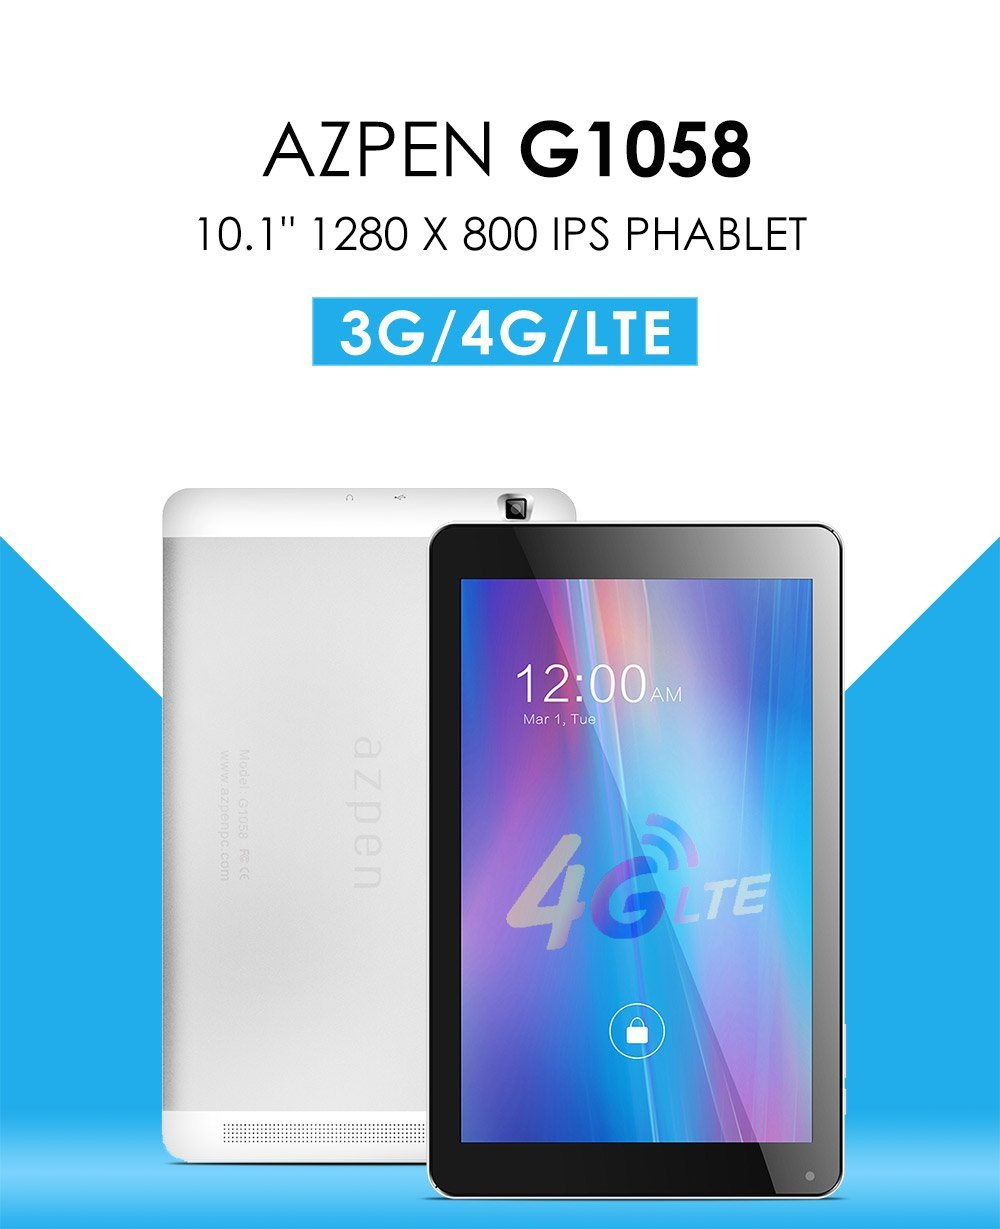 Azpen G1058 10'' 4G LTE Quad Core Android Unlocked Phone Tablet with Bluetooth GPS Dual Cameras